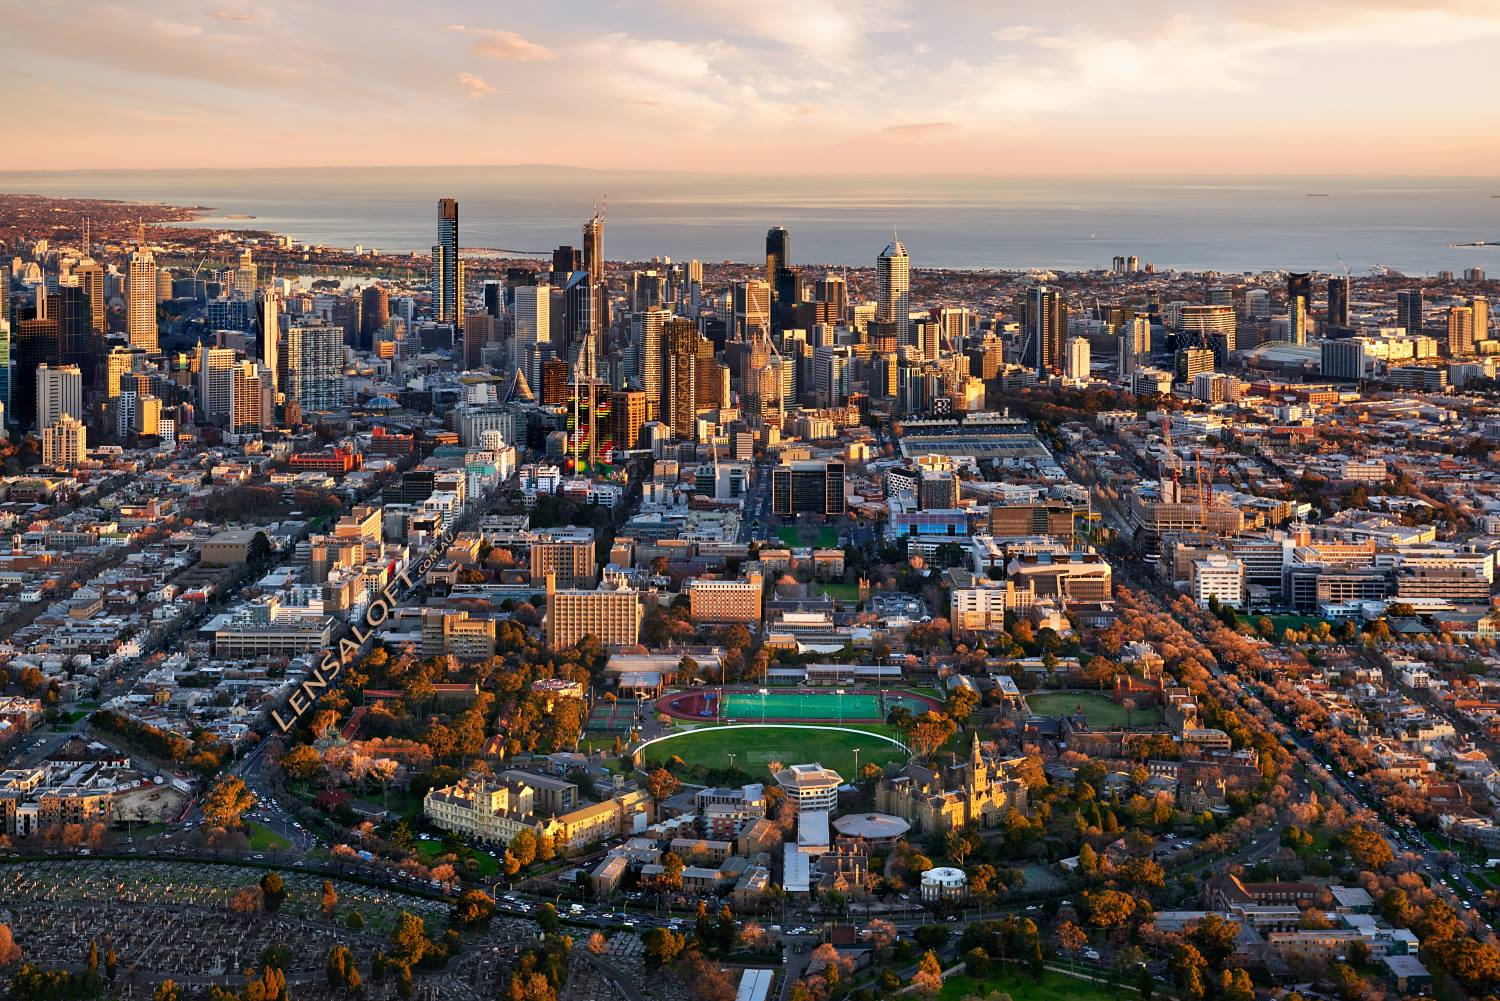 Melbourne aerial photos